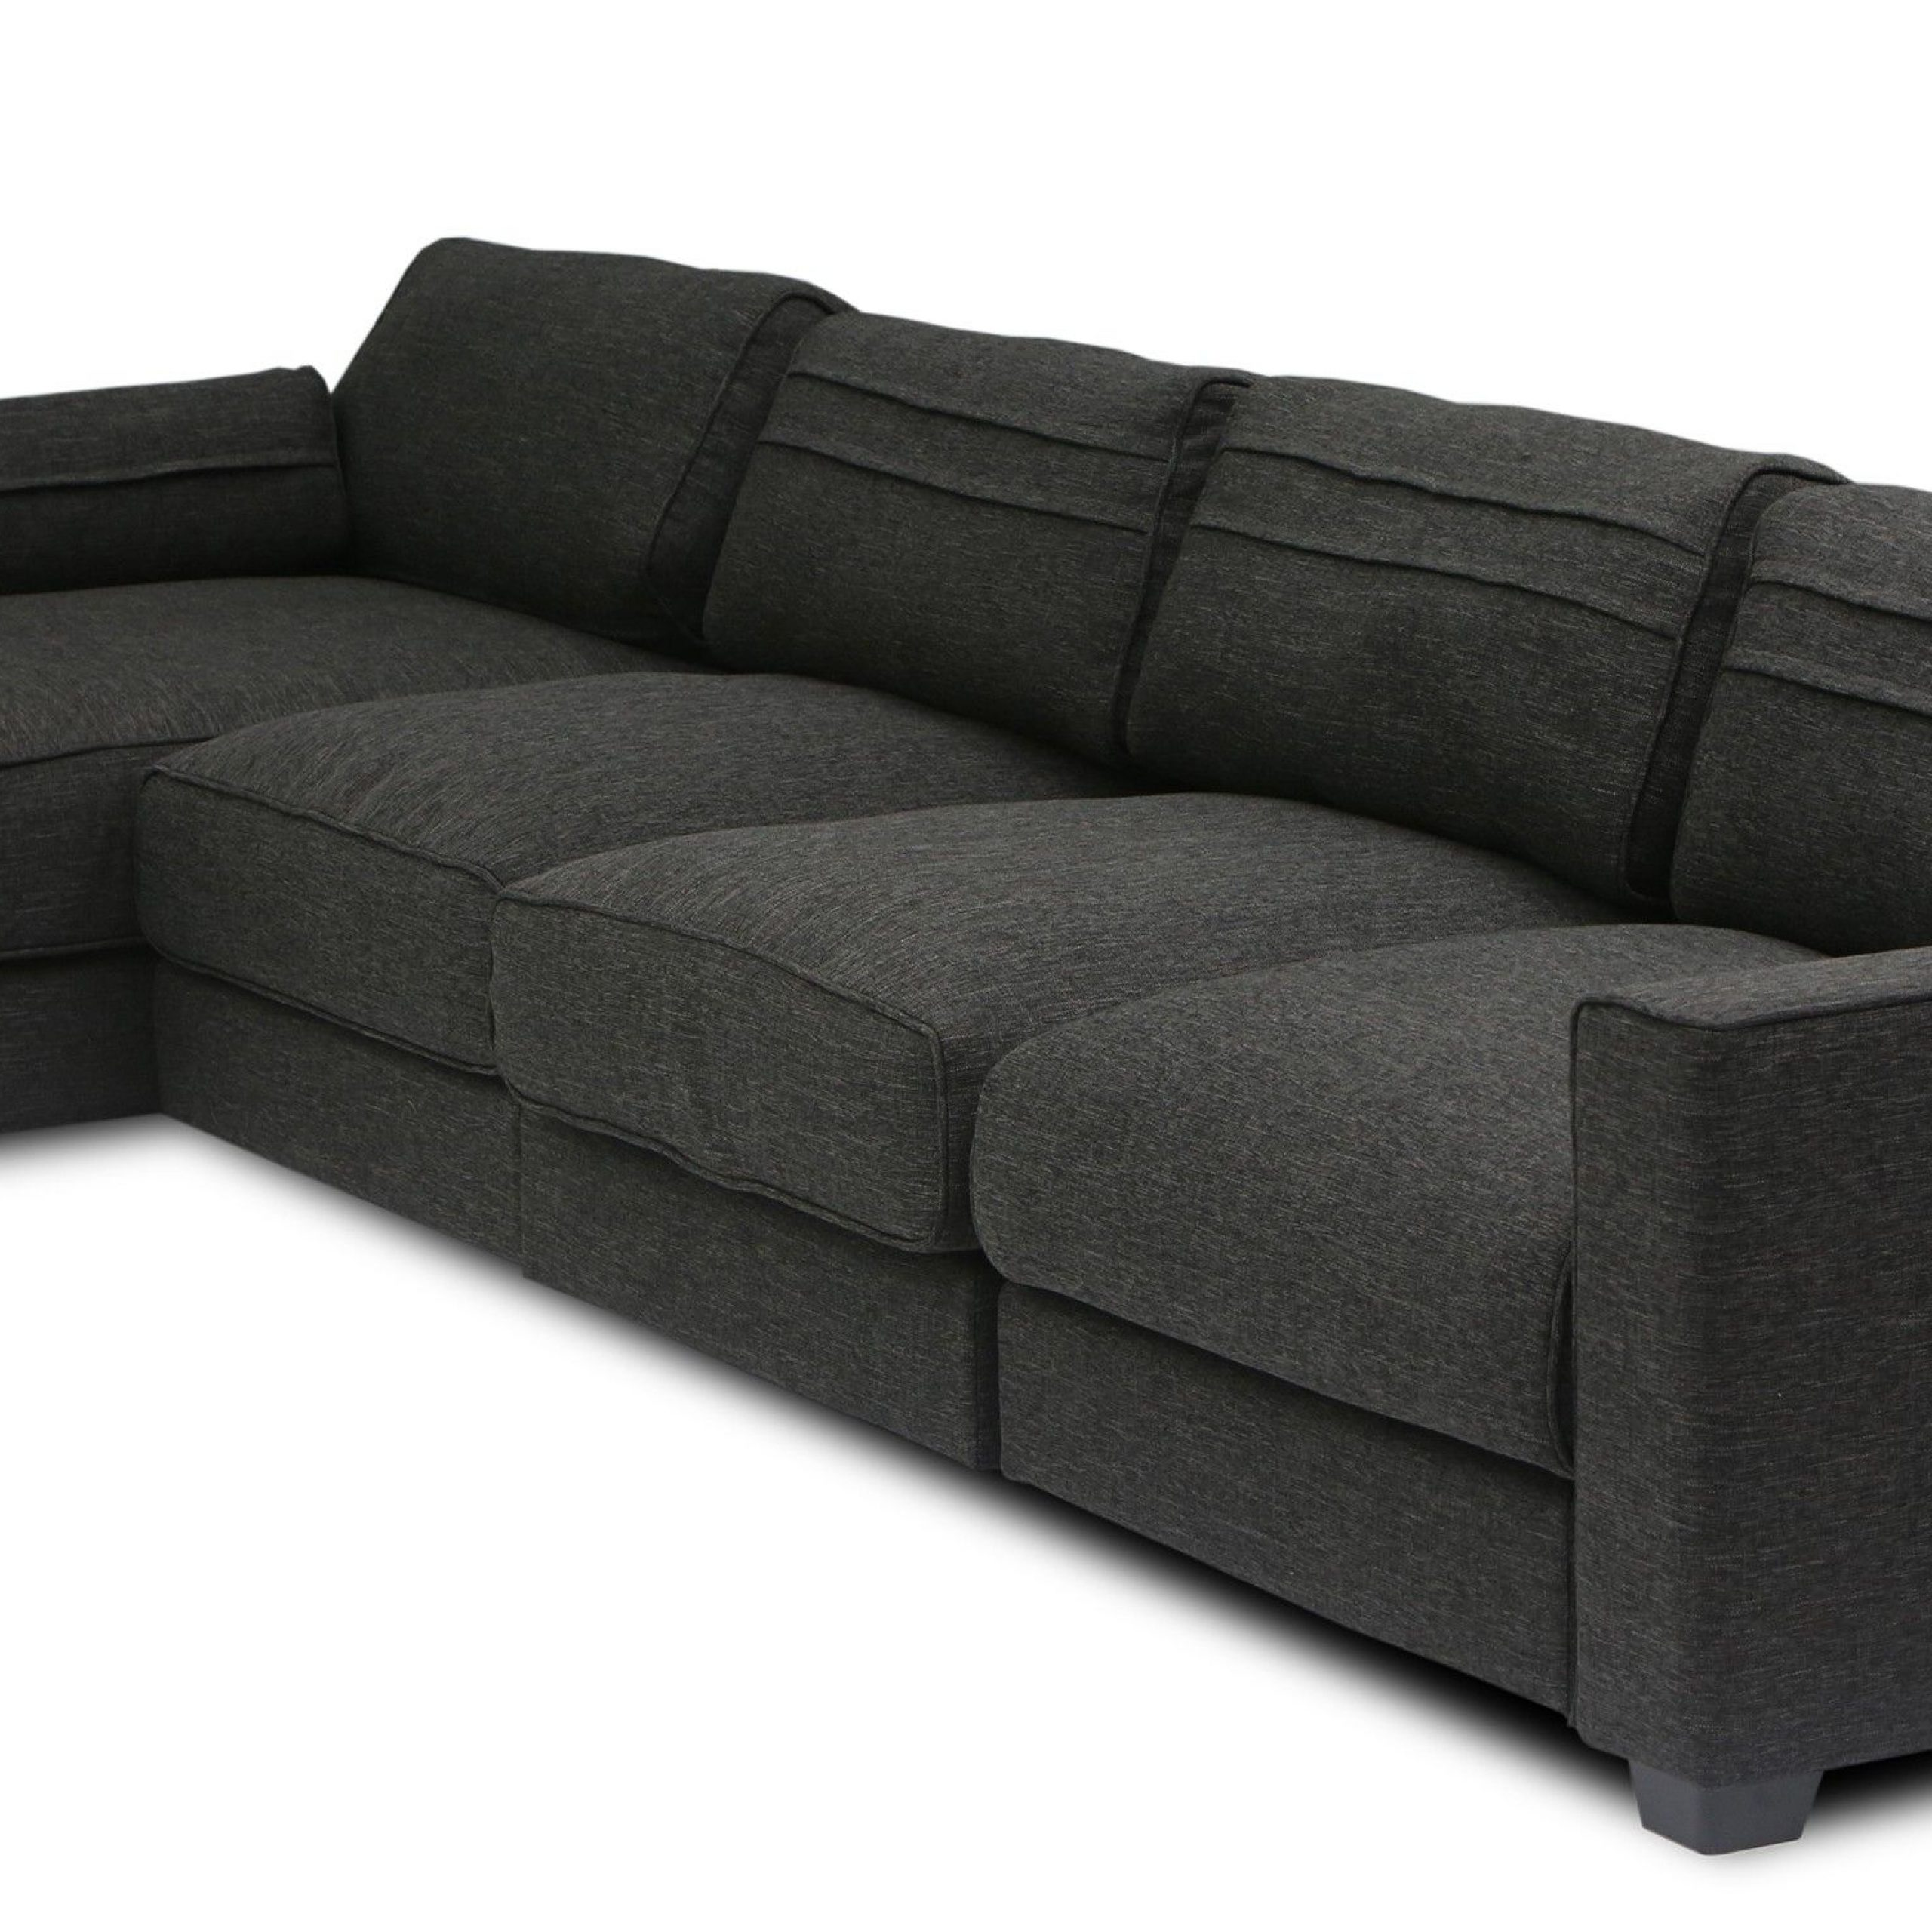 2017 Vani Modular 3 Seat Right Sectional With Chaise With Regard To Alani Mid Century Modern Sectional Sofas With Chaise (View 21 of 25)